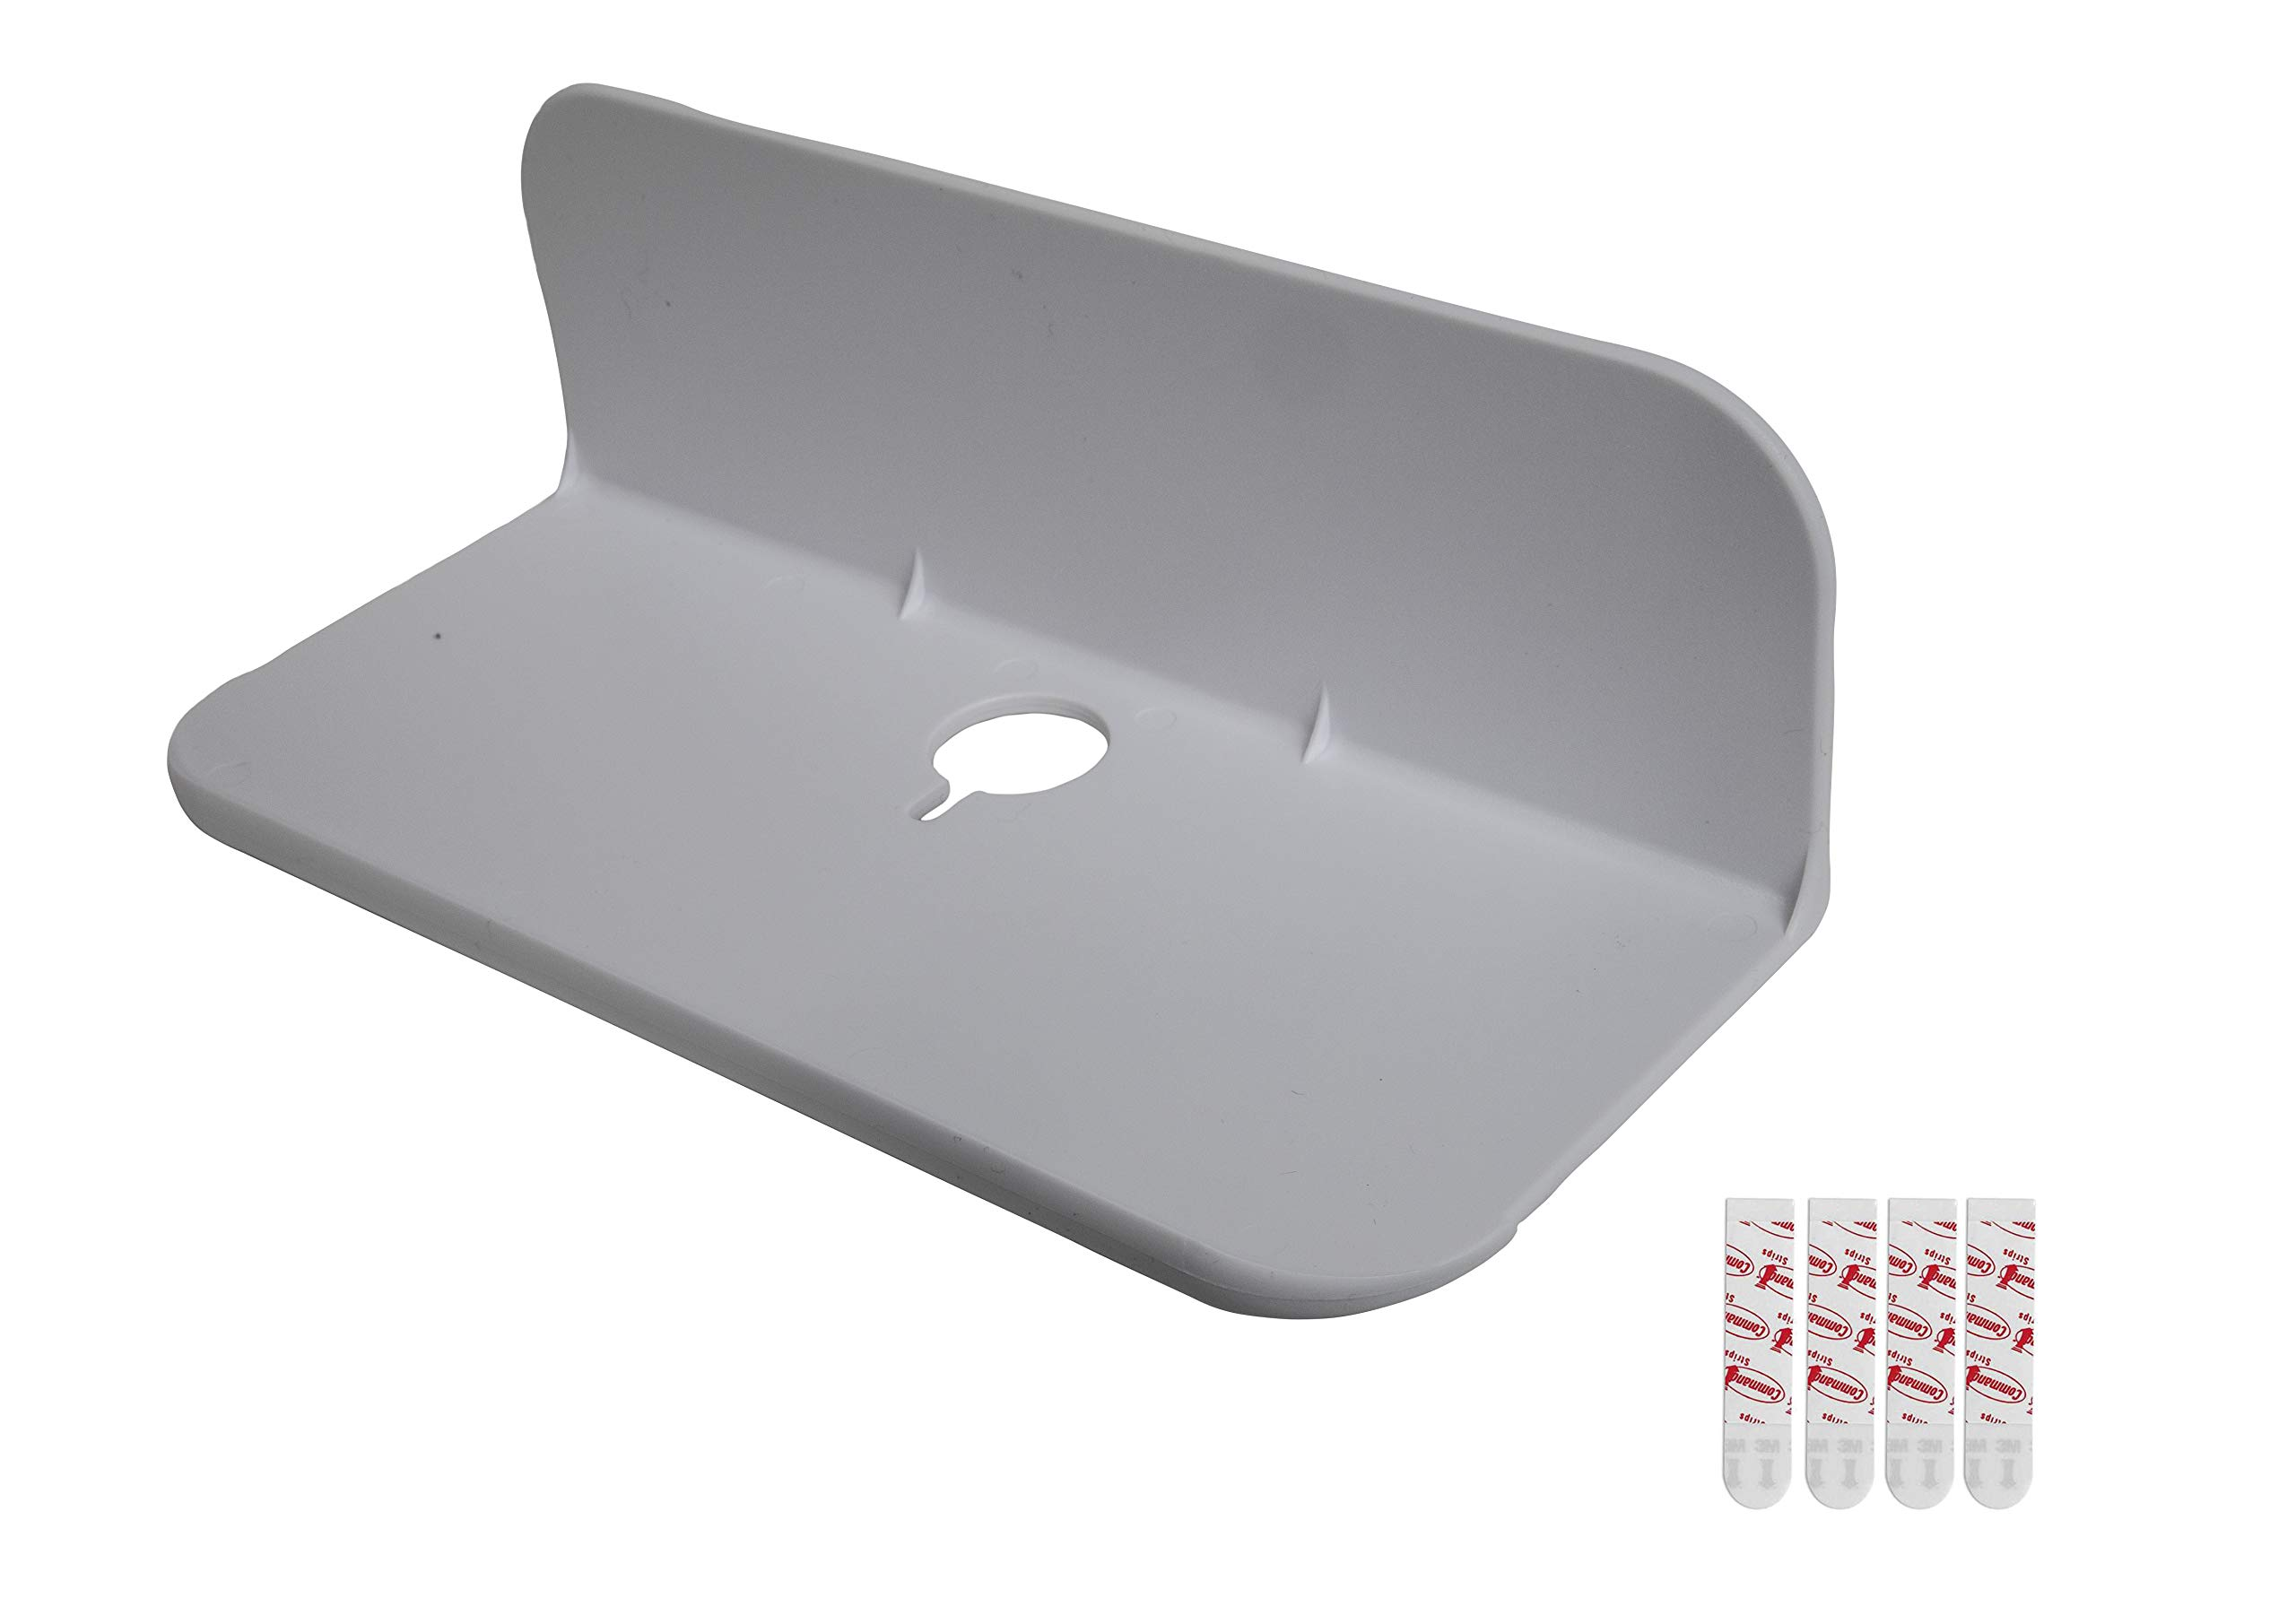 eLhook White 9 Inch Small Bathroom Shelf